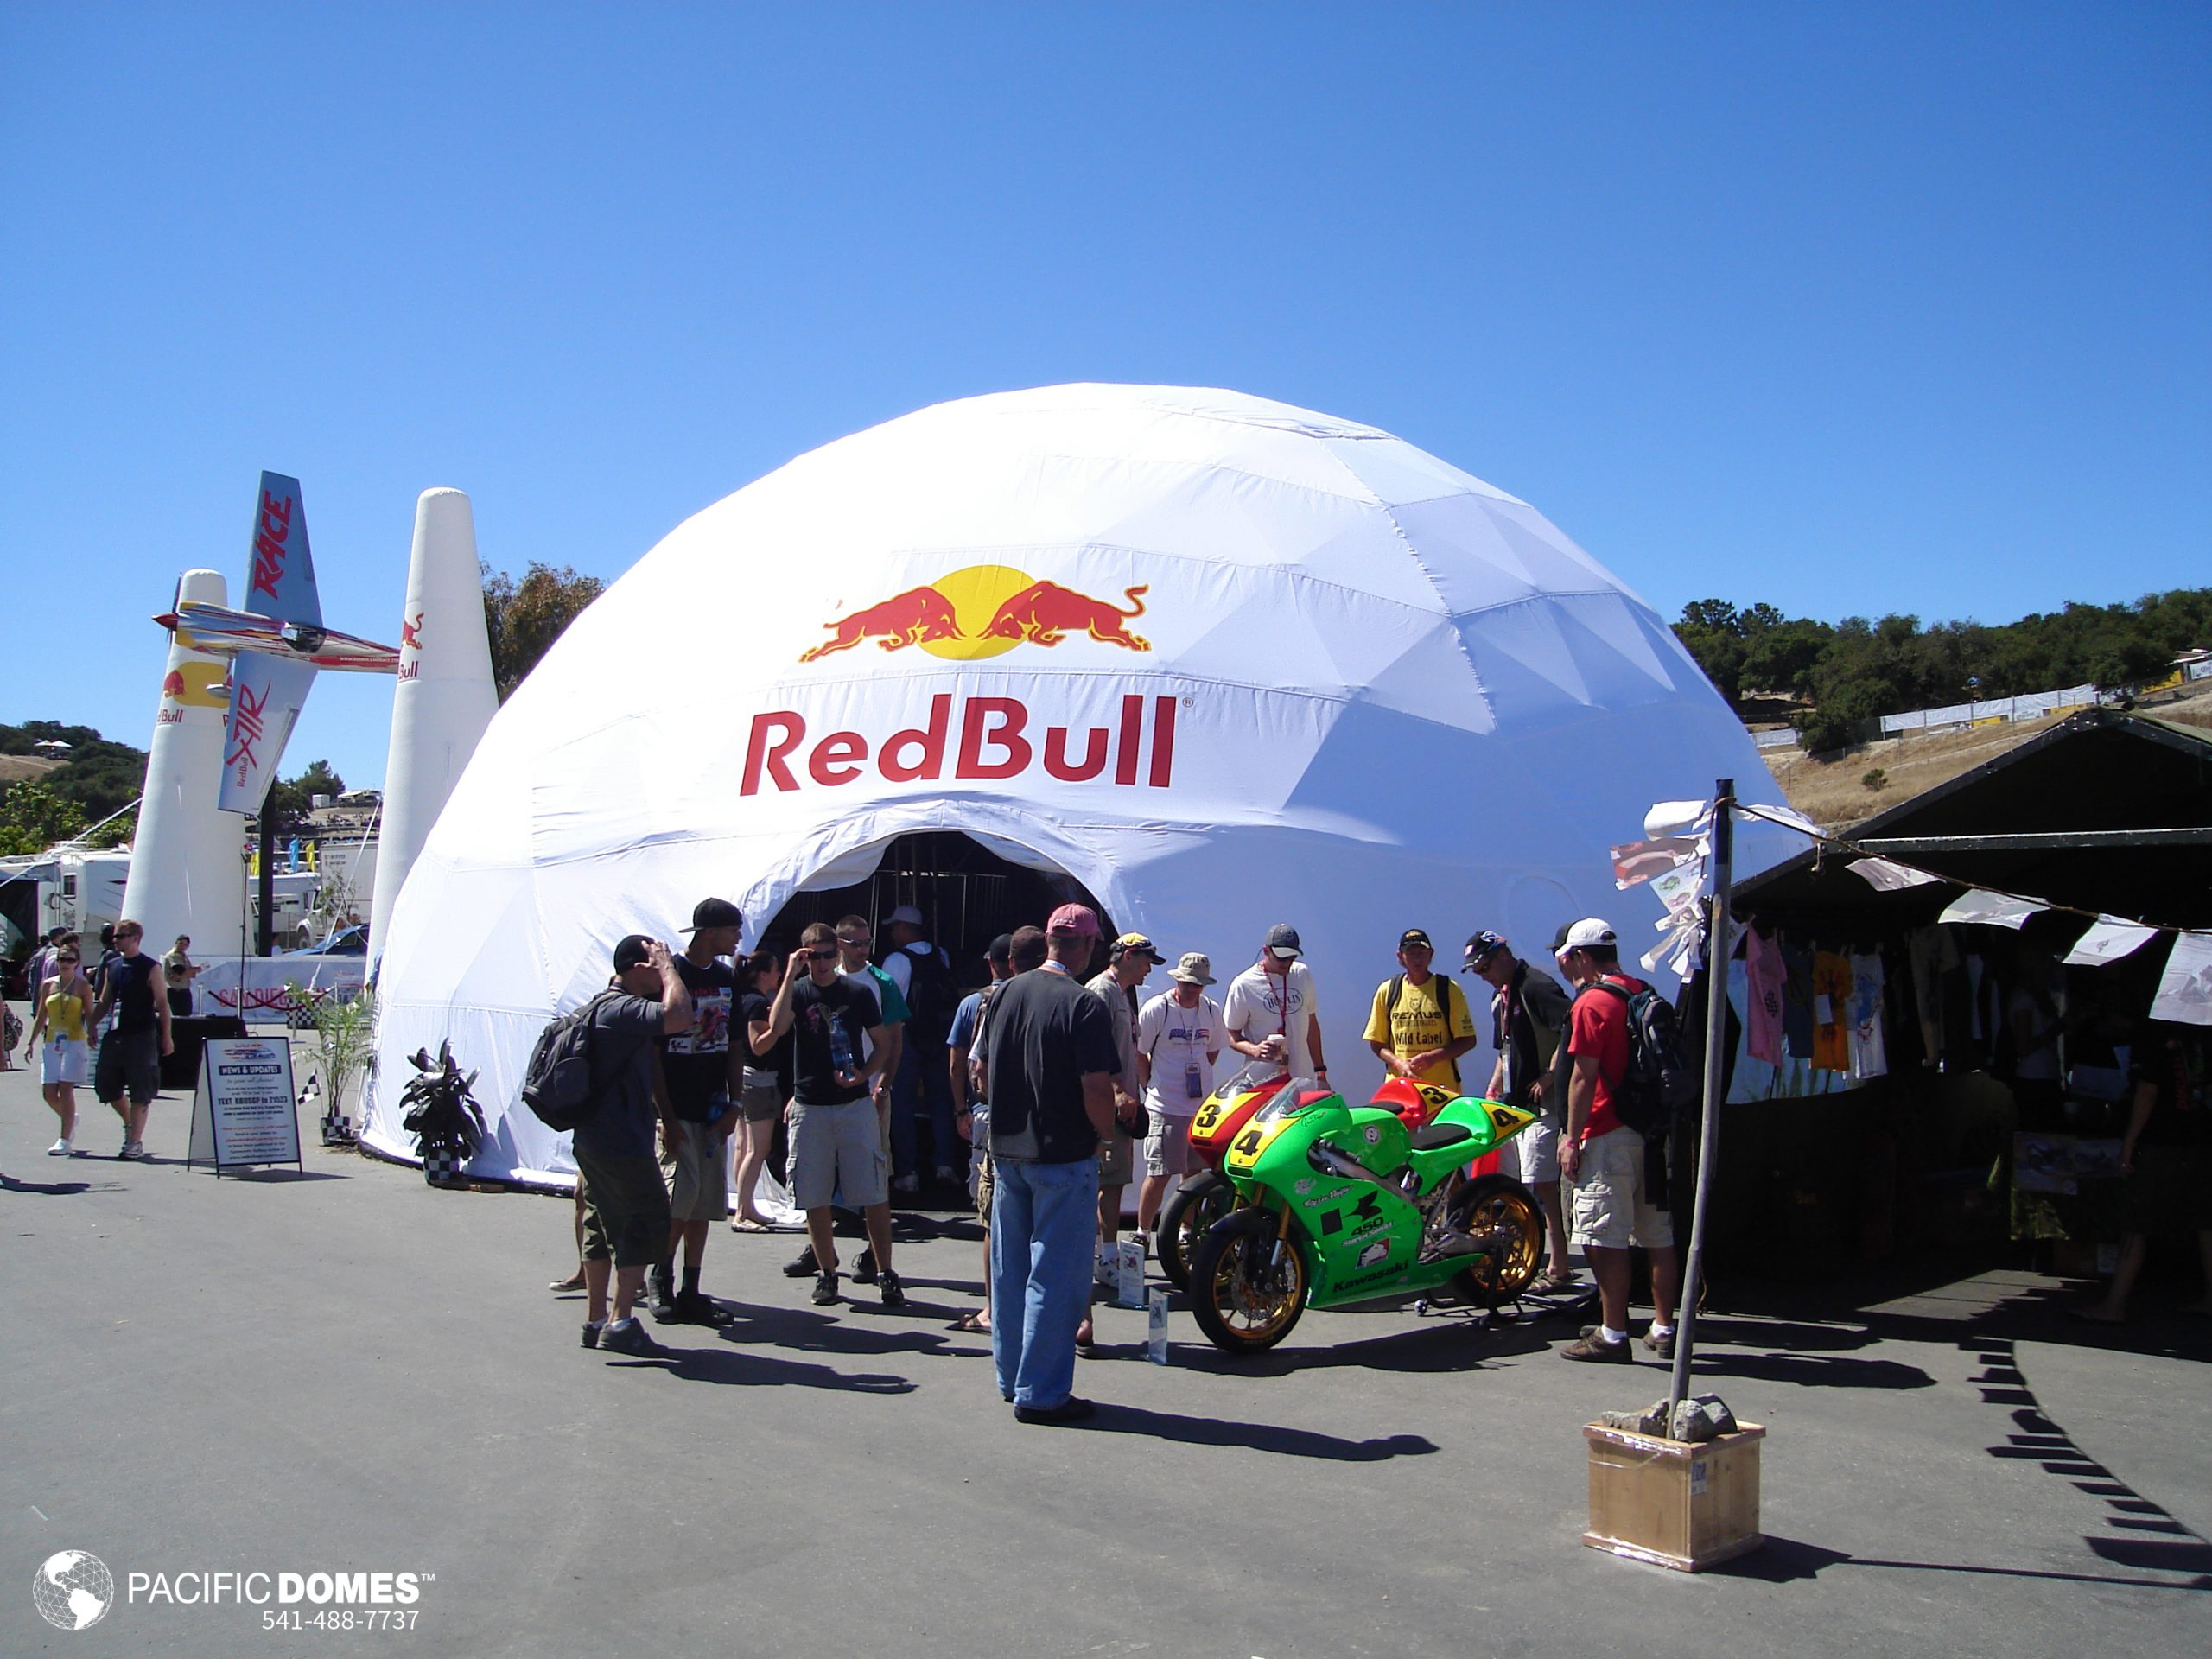 glamping-domes-events-shows